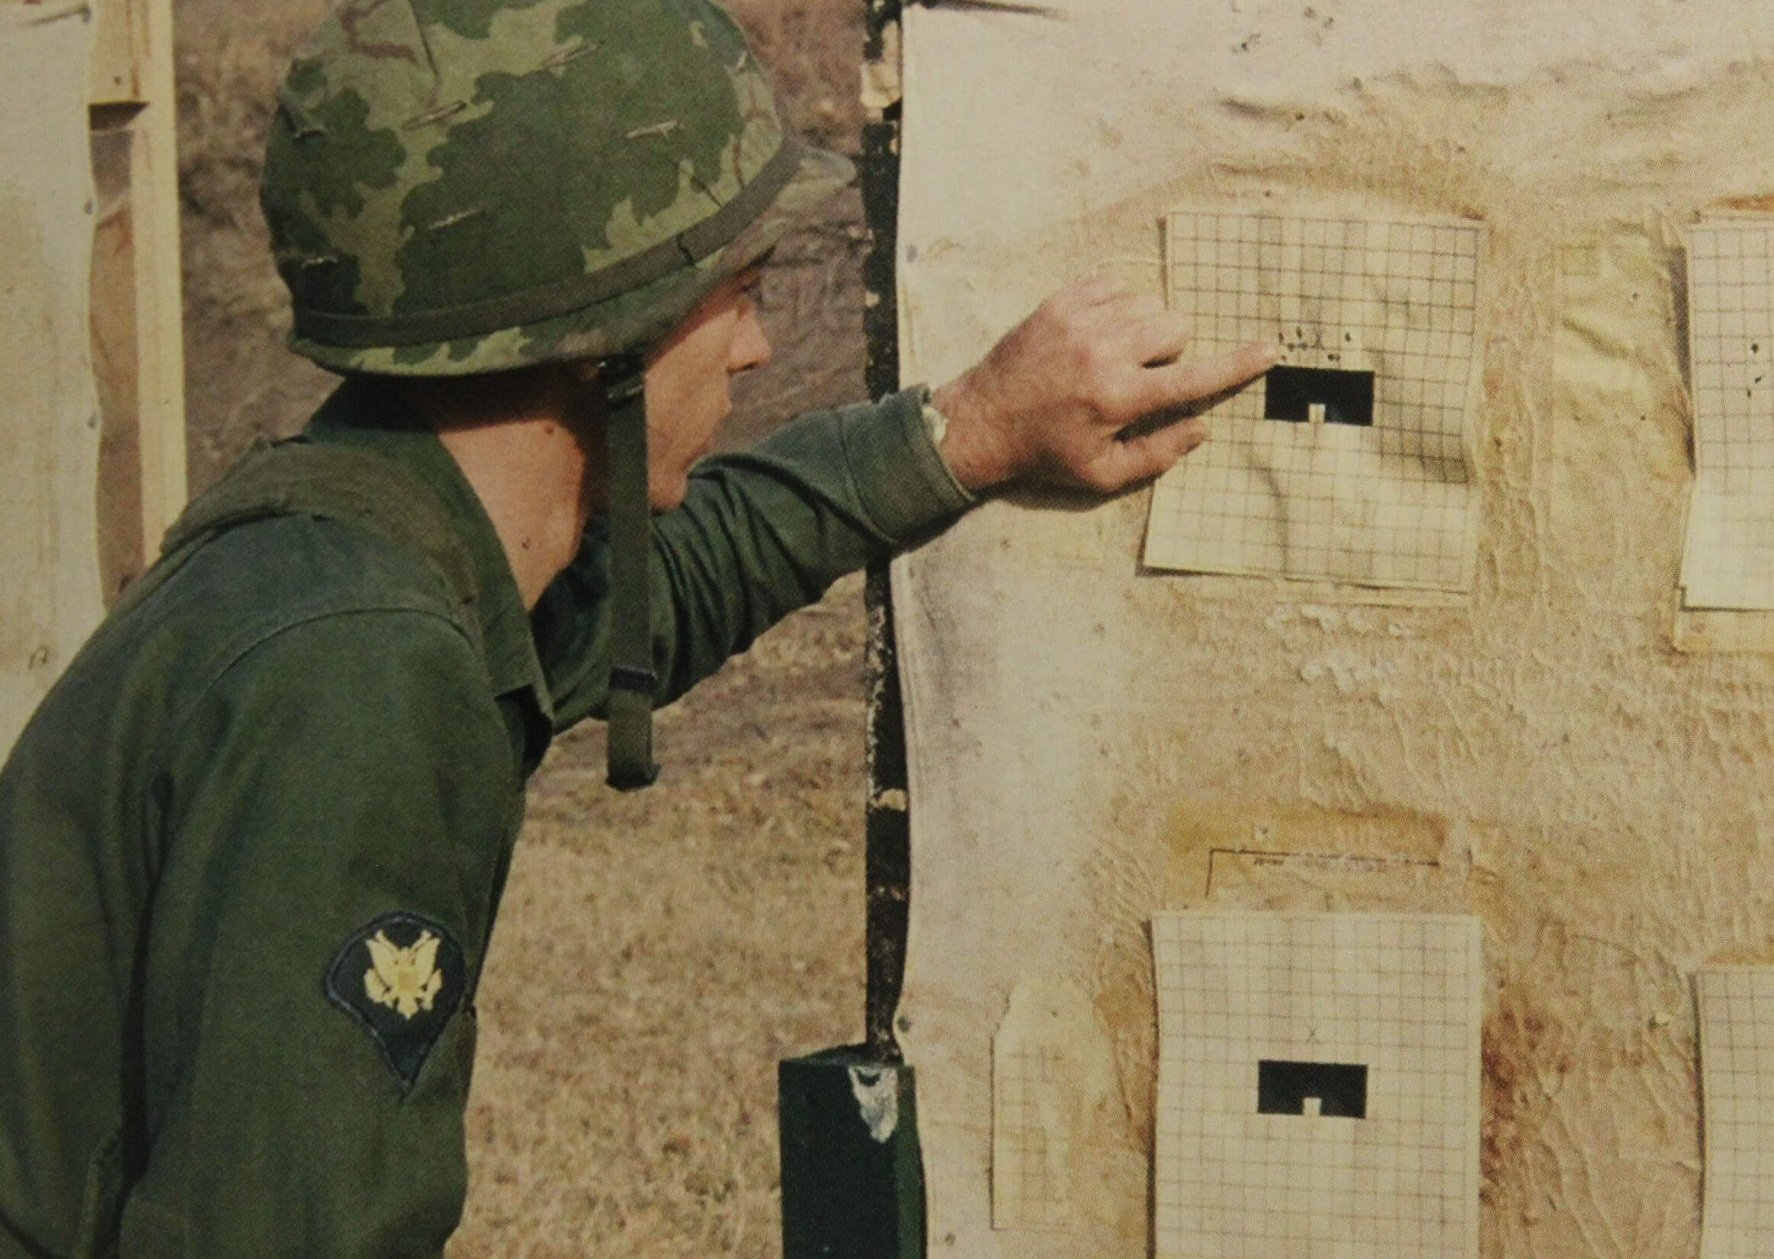 A young soldier looking up close at his target.